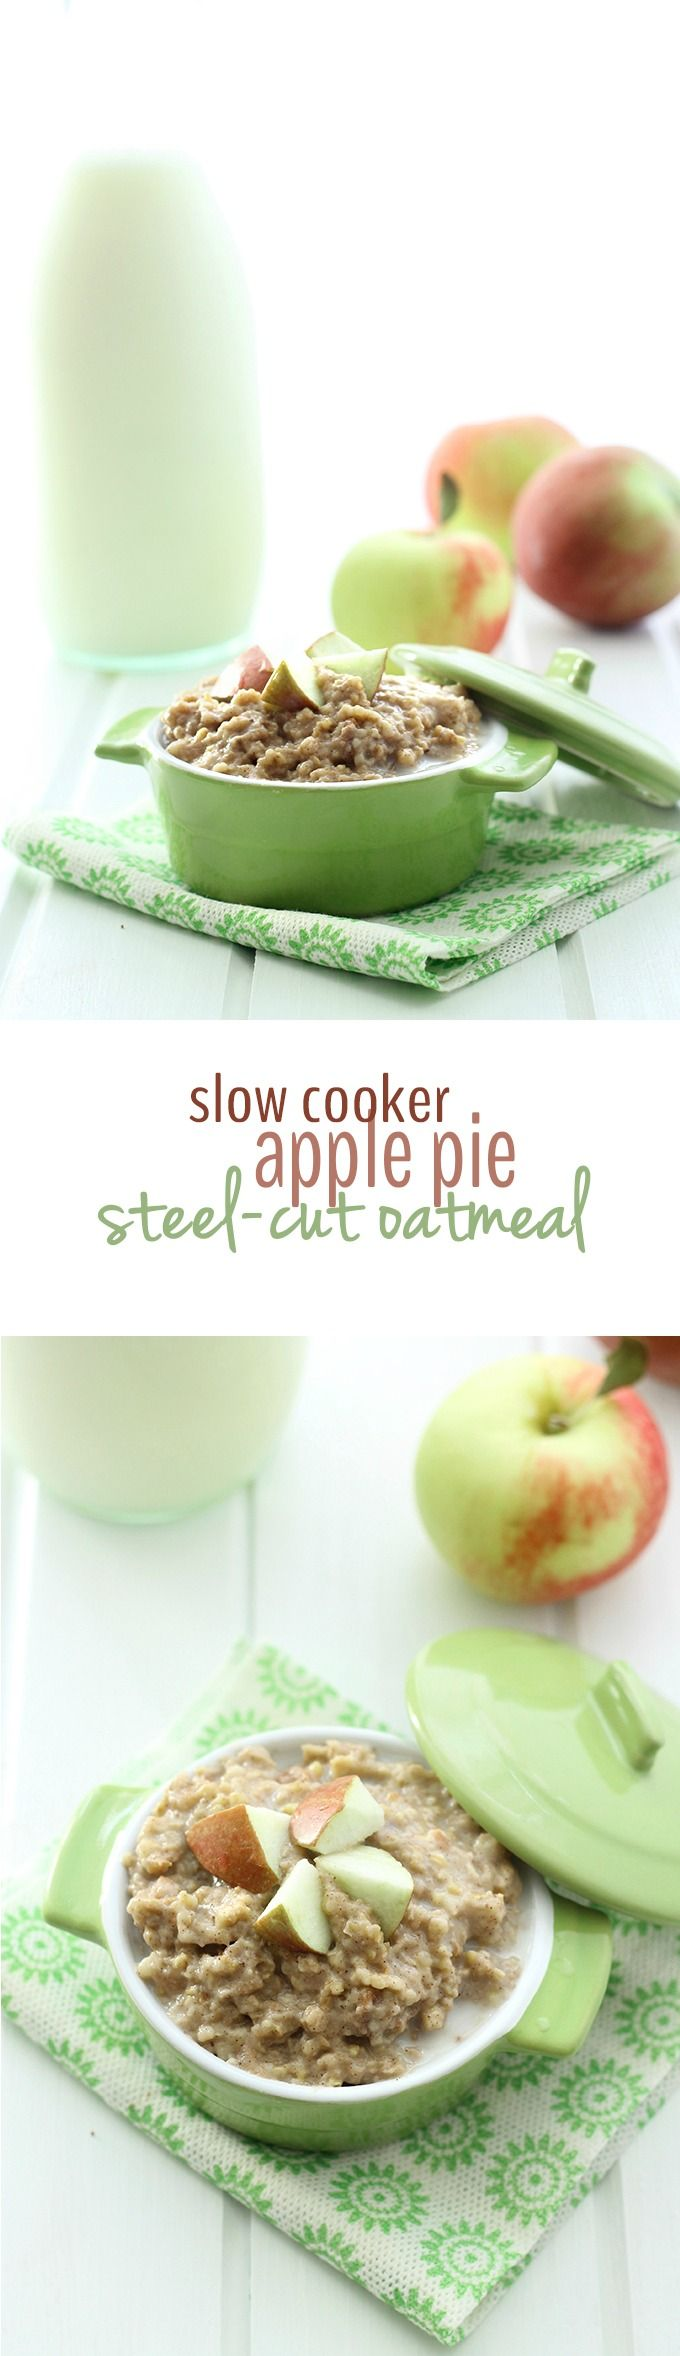 Slow Cooker Apple Pie Steel-Cut Oatmeal | Recipe | Carrot ...